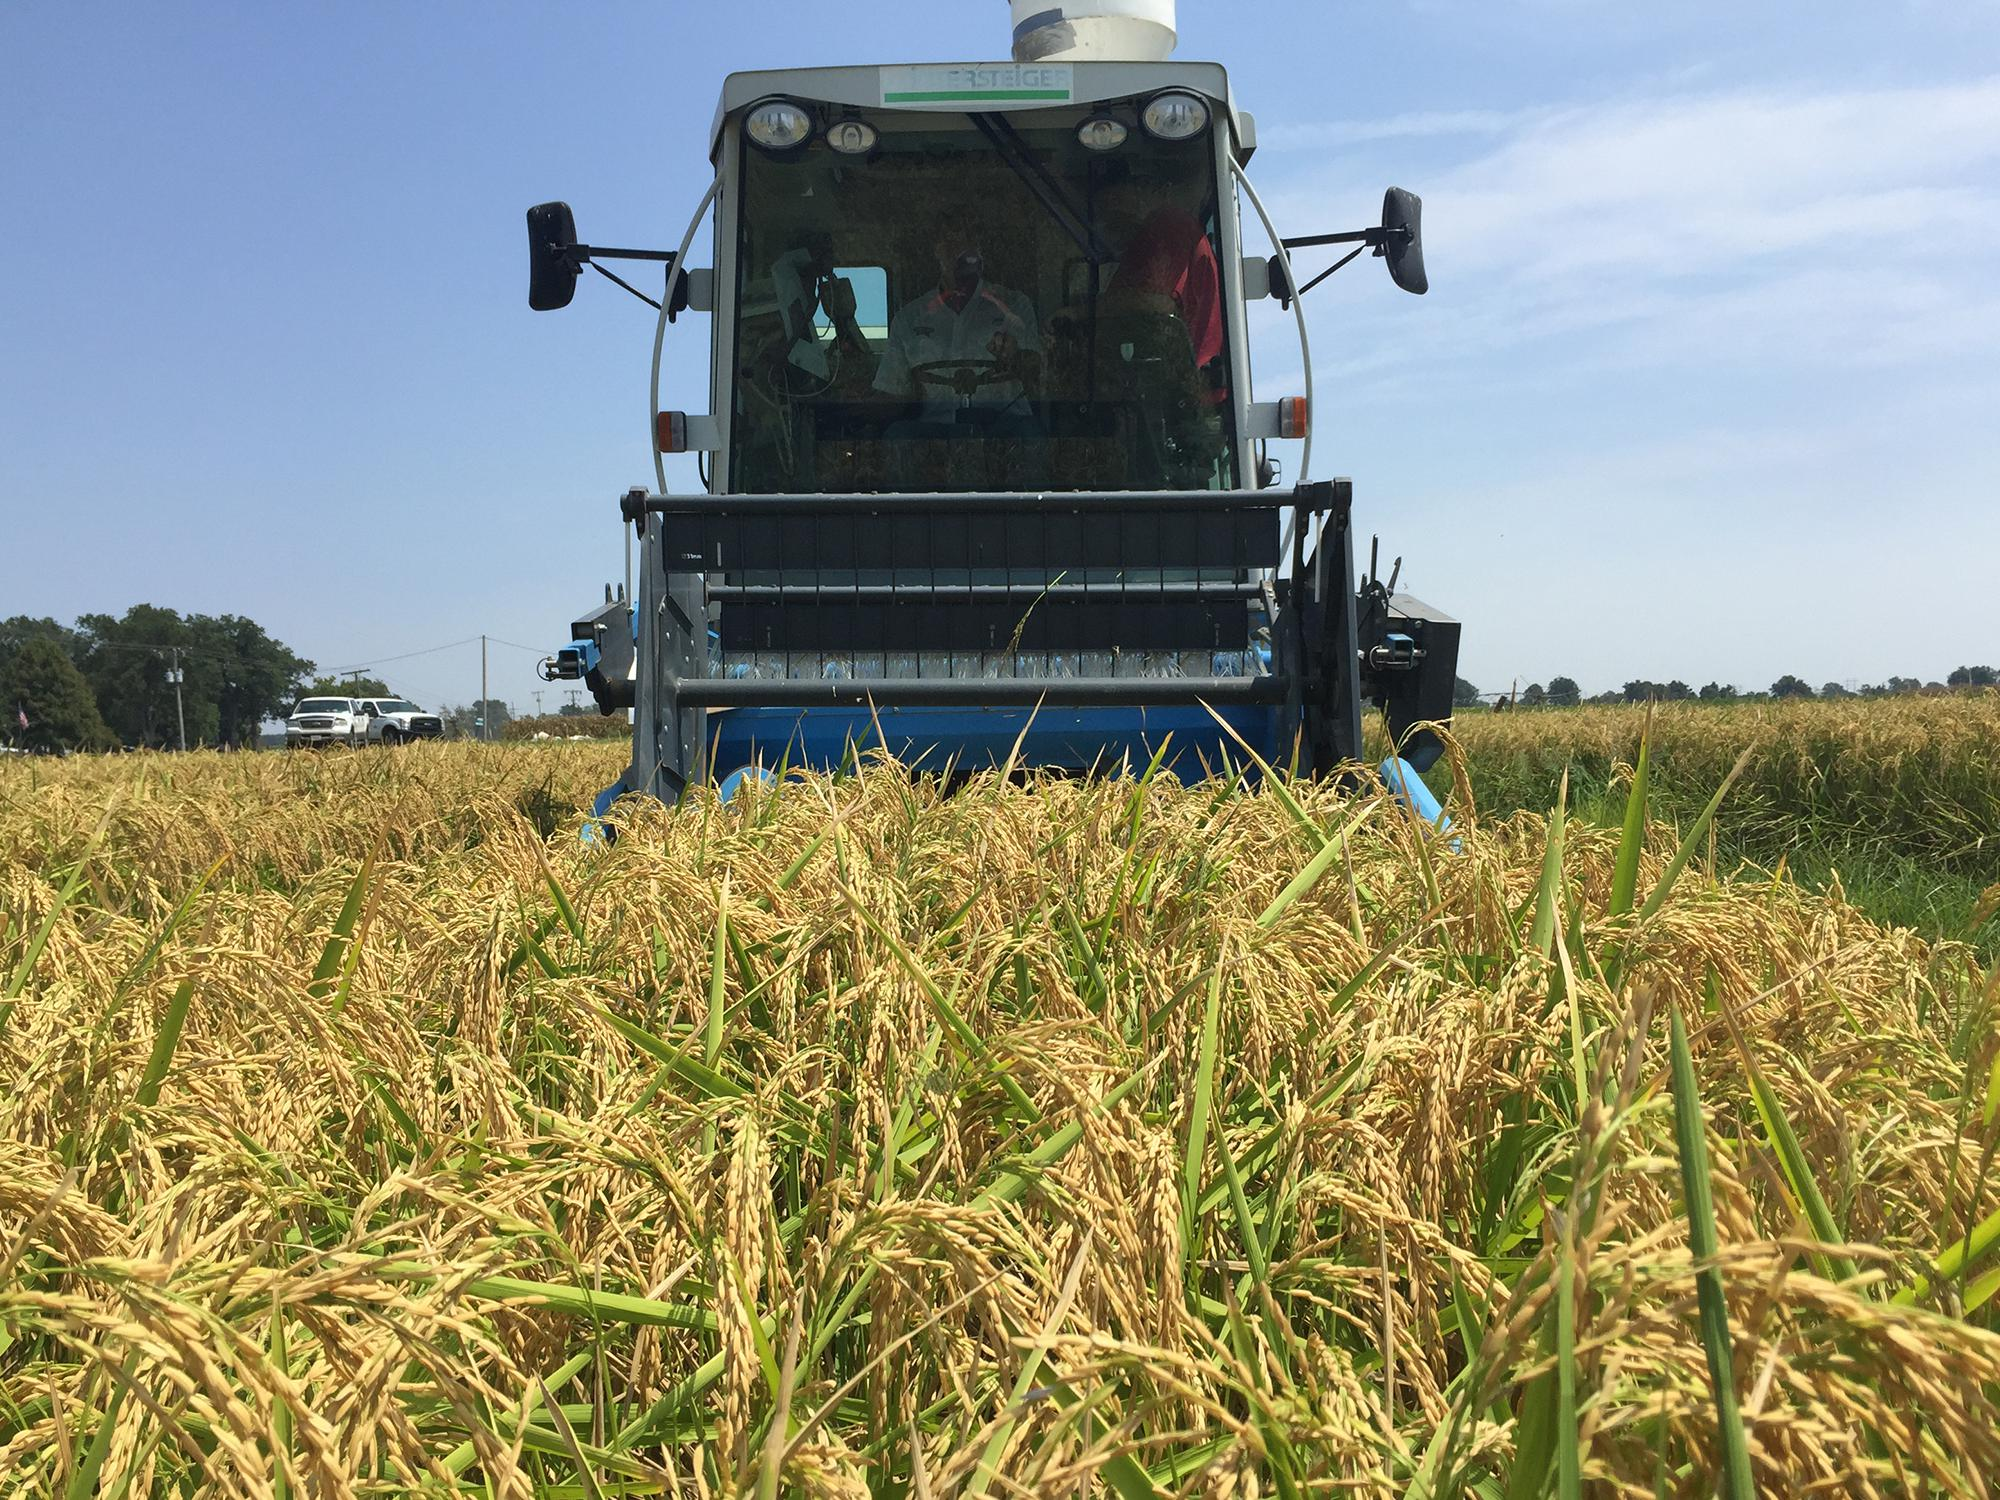 Mississippi State University field personnel begin the rice harvest on test plots at the Delta Research and Extension Center in Stoneville, Mississippi. (File photo by MSU Extension Service/Bobby Golden)